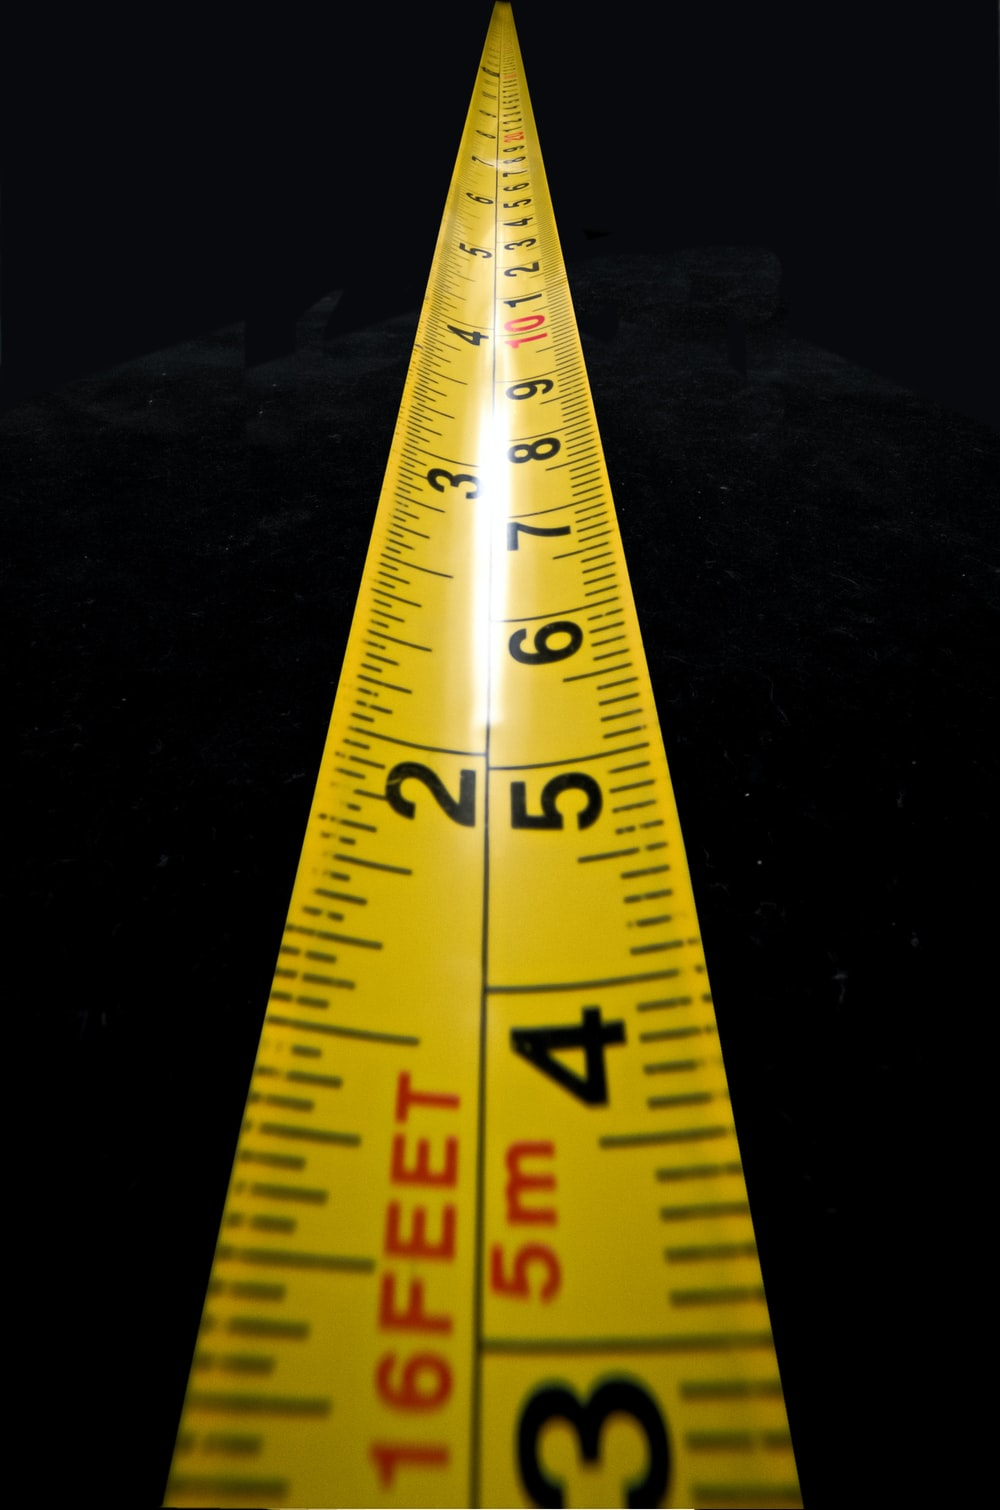 How many centimeters in an inch